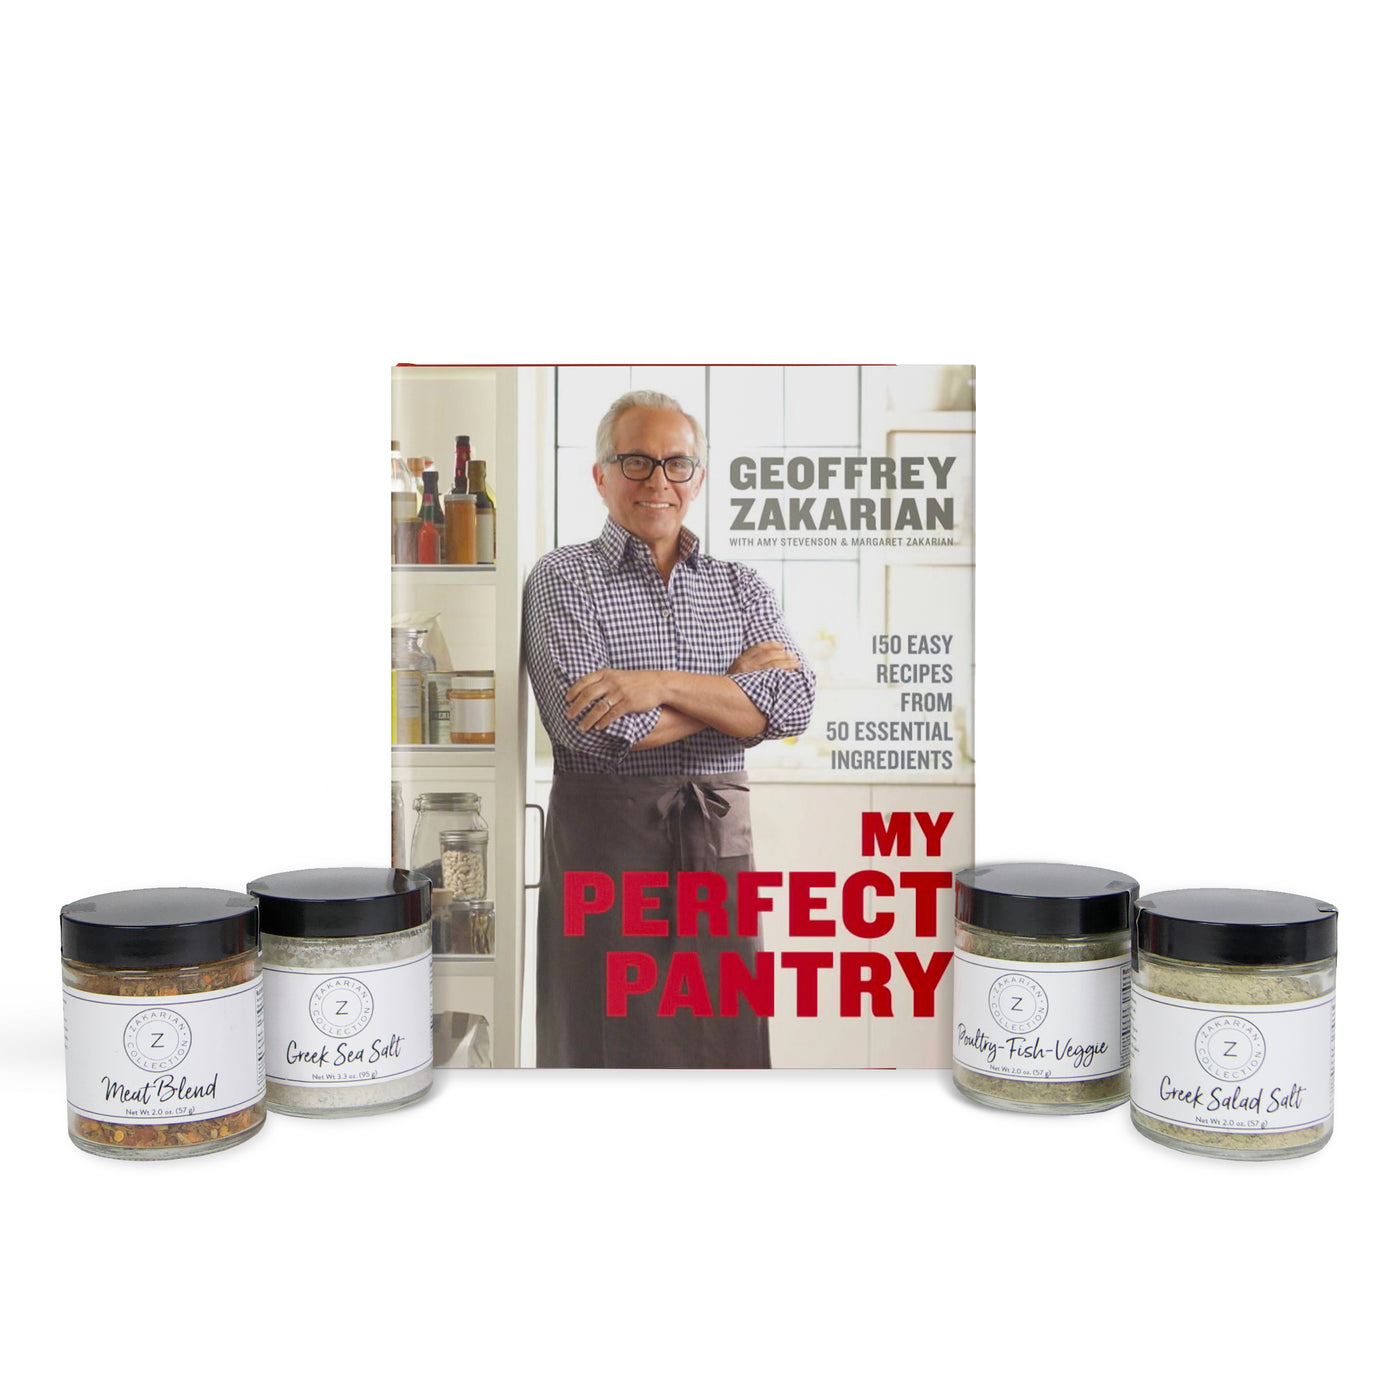 My Perfect Pantry & Zakarian Spice Set